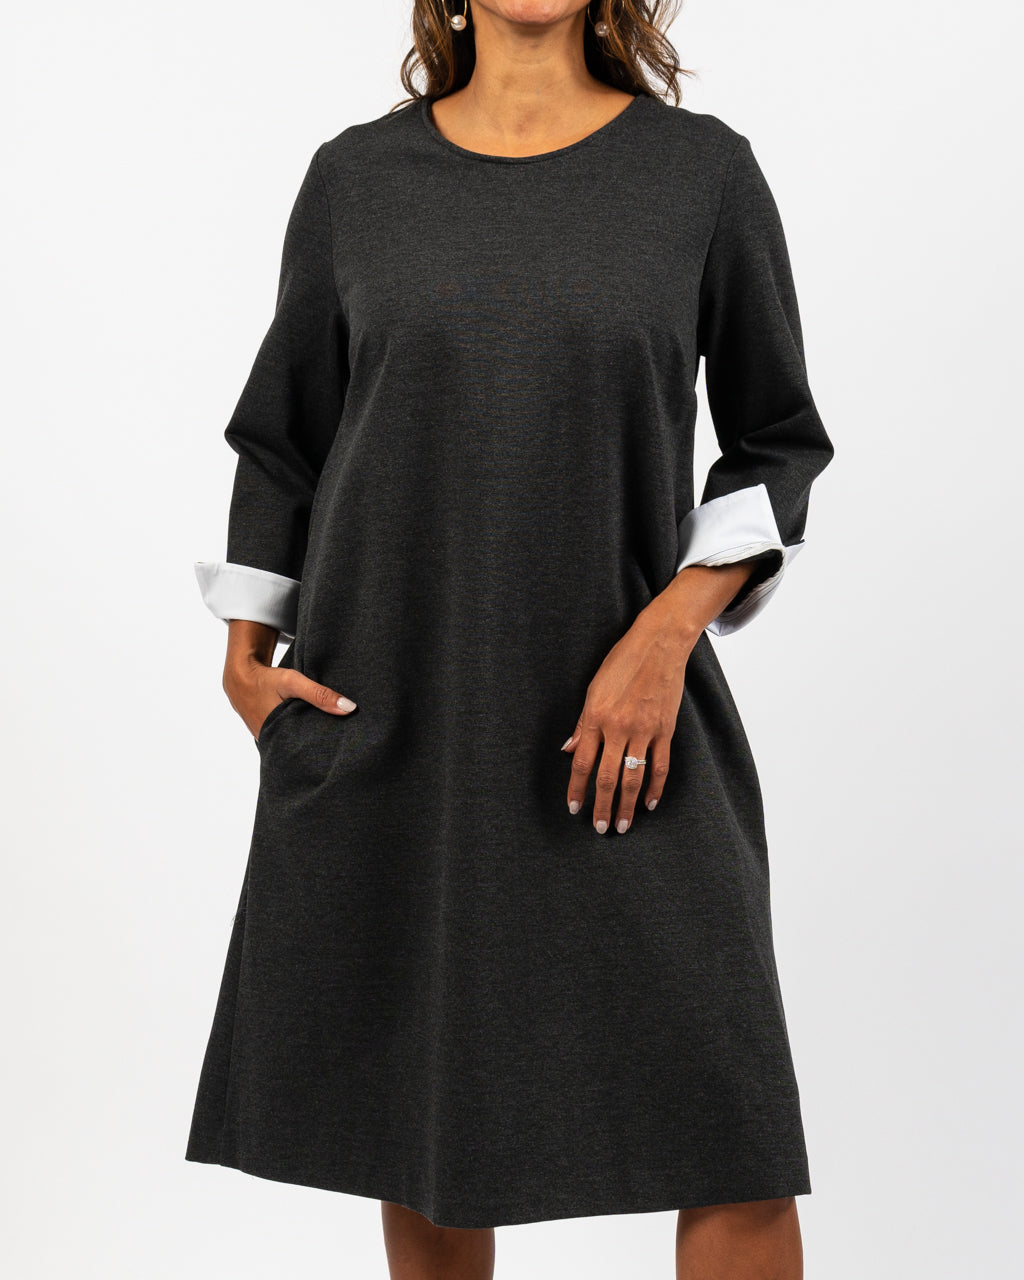 Charcoal Dress with Contrast Cuff